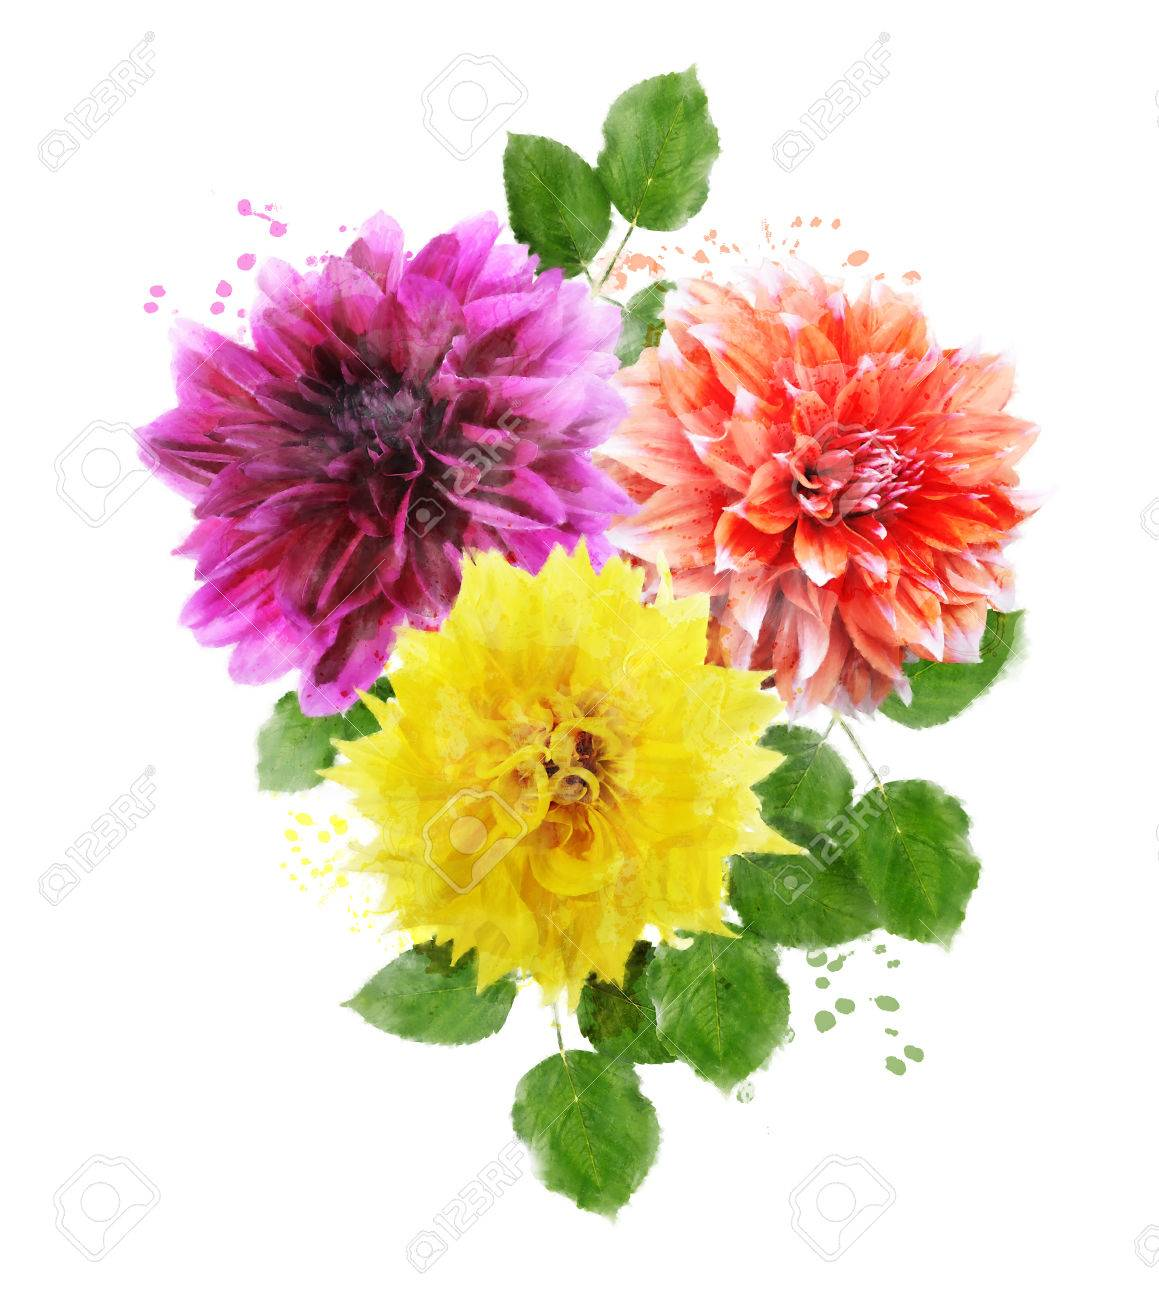 Watercolor Digital Painting Of Dahlia Flowers Stock Photo Picture And Royalty Free Image Image 32701980